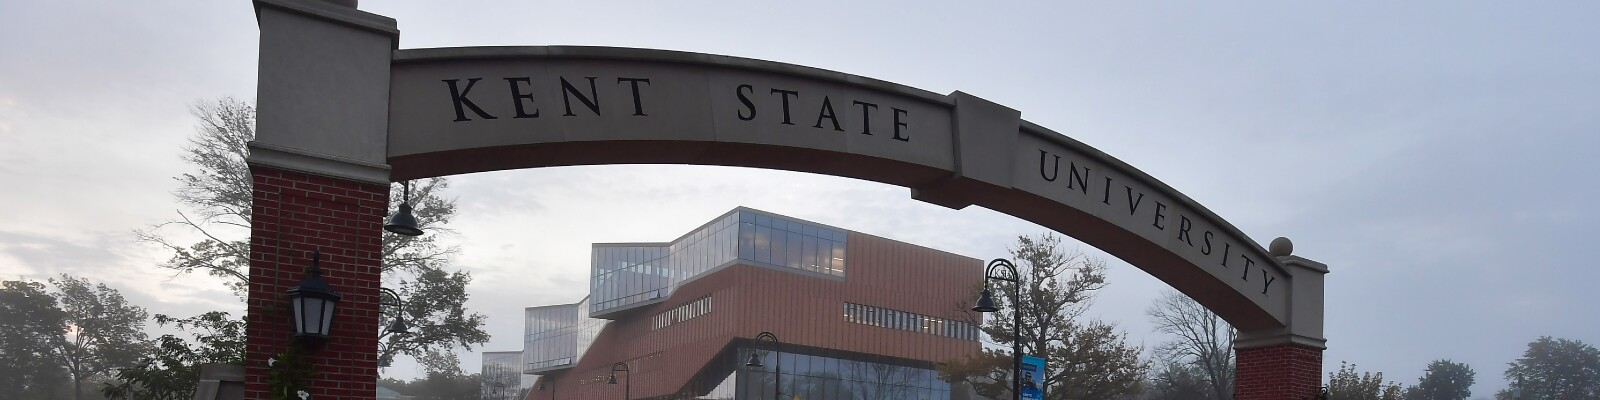 Kent State University campus arch with college name on it